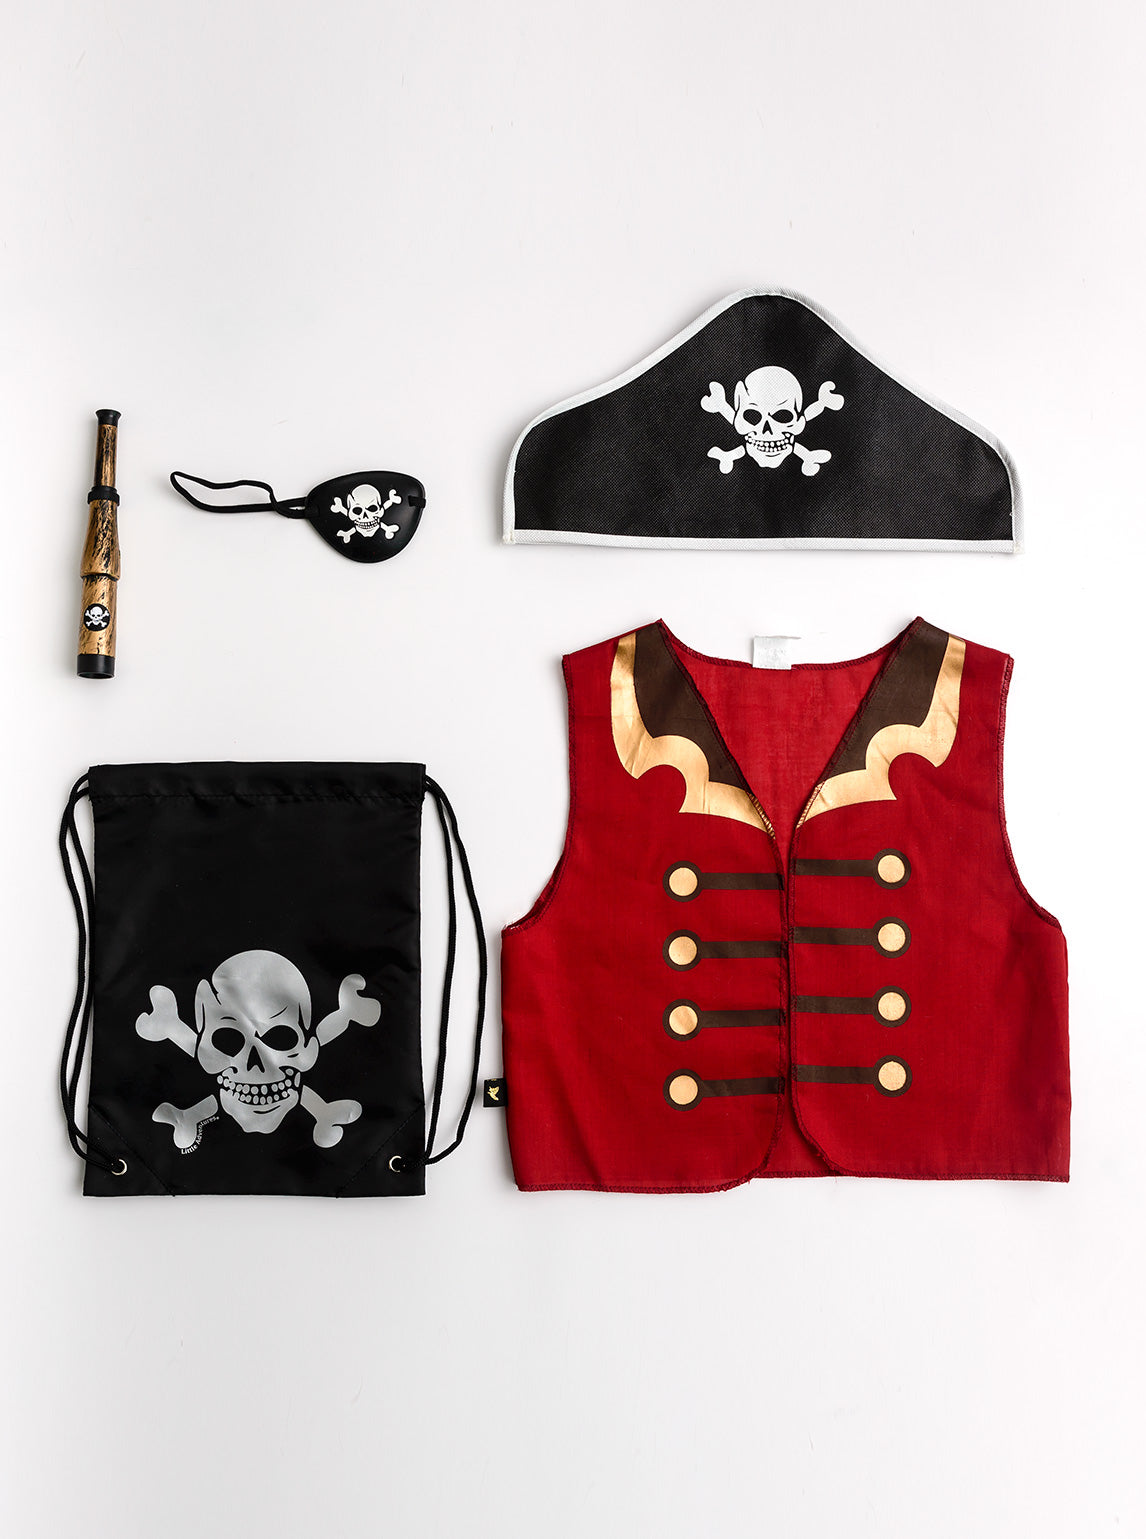 Little Adventures Pirate Gift Set is a perfectly packaged pretend play set that conveniently fits inside its matching drawstring bag. Give as a gift or just because, this Gift Set is all you need! Intended for ages 3-5 this set comes with a Pirate Vest, Pirate Telescope, Pirate Hat, Eye Patch, and Pirate Drawstring Bag.